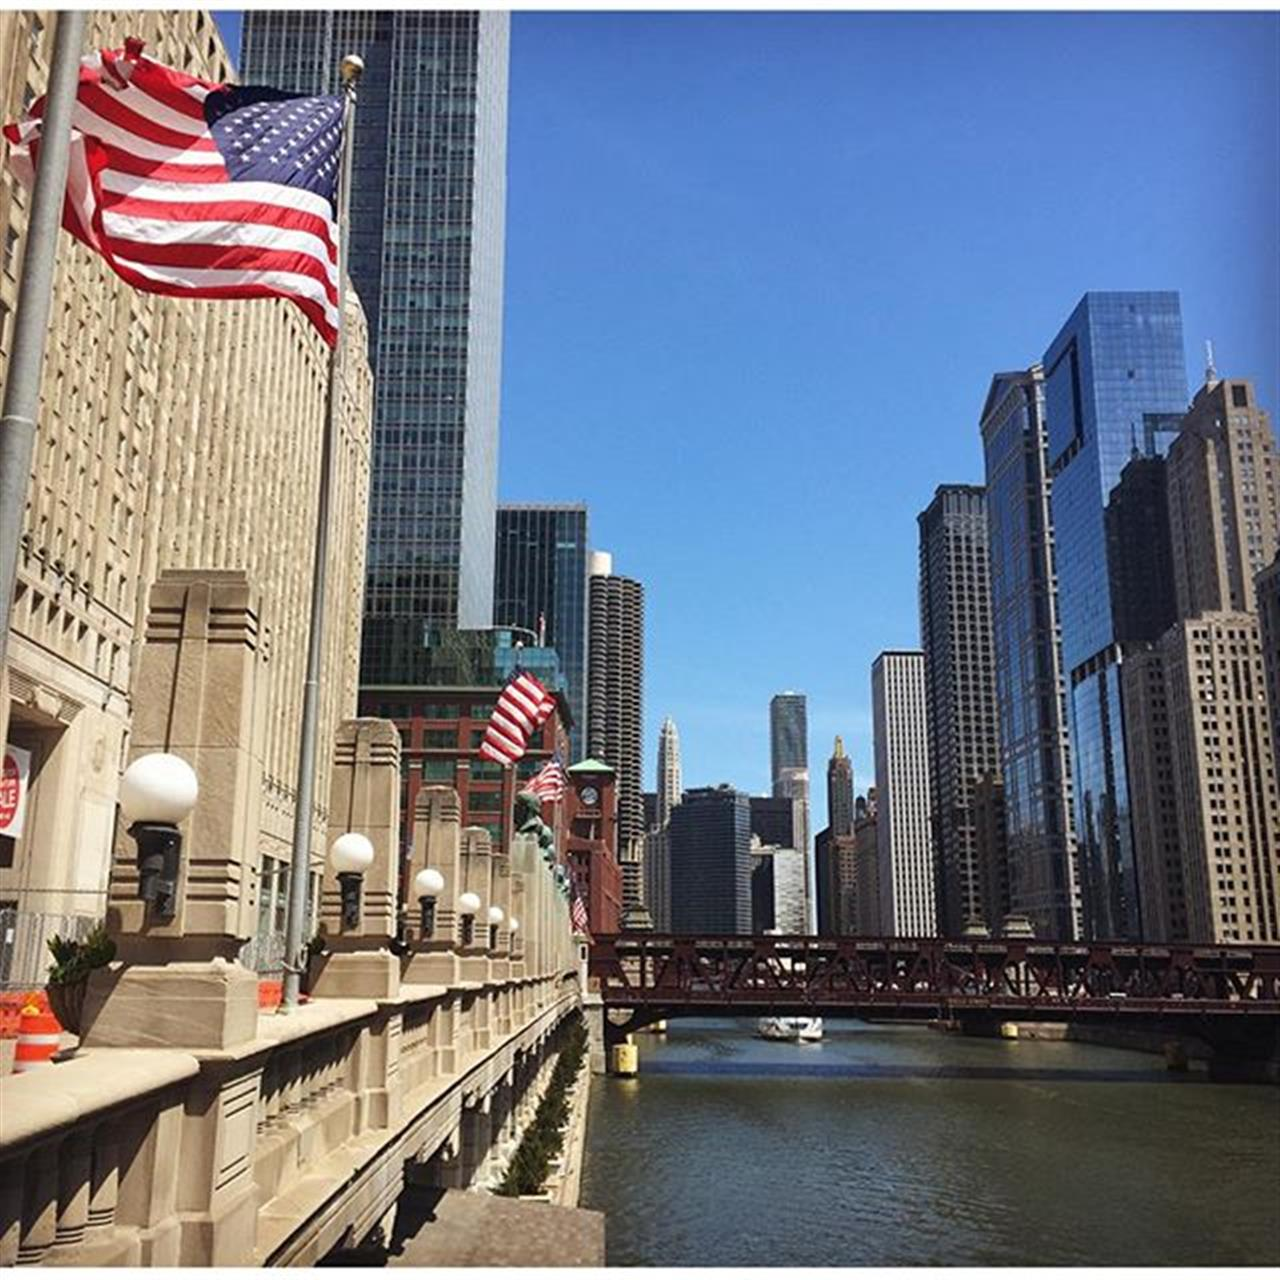 #riverwalk #chicago #summerinthecity #leadingrelocal #leadingre